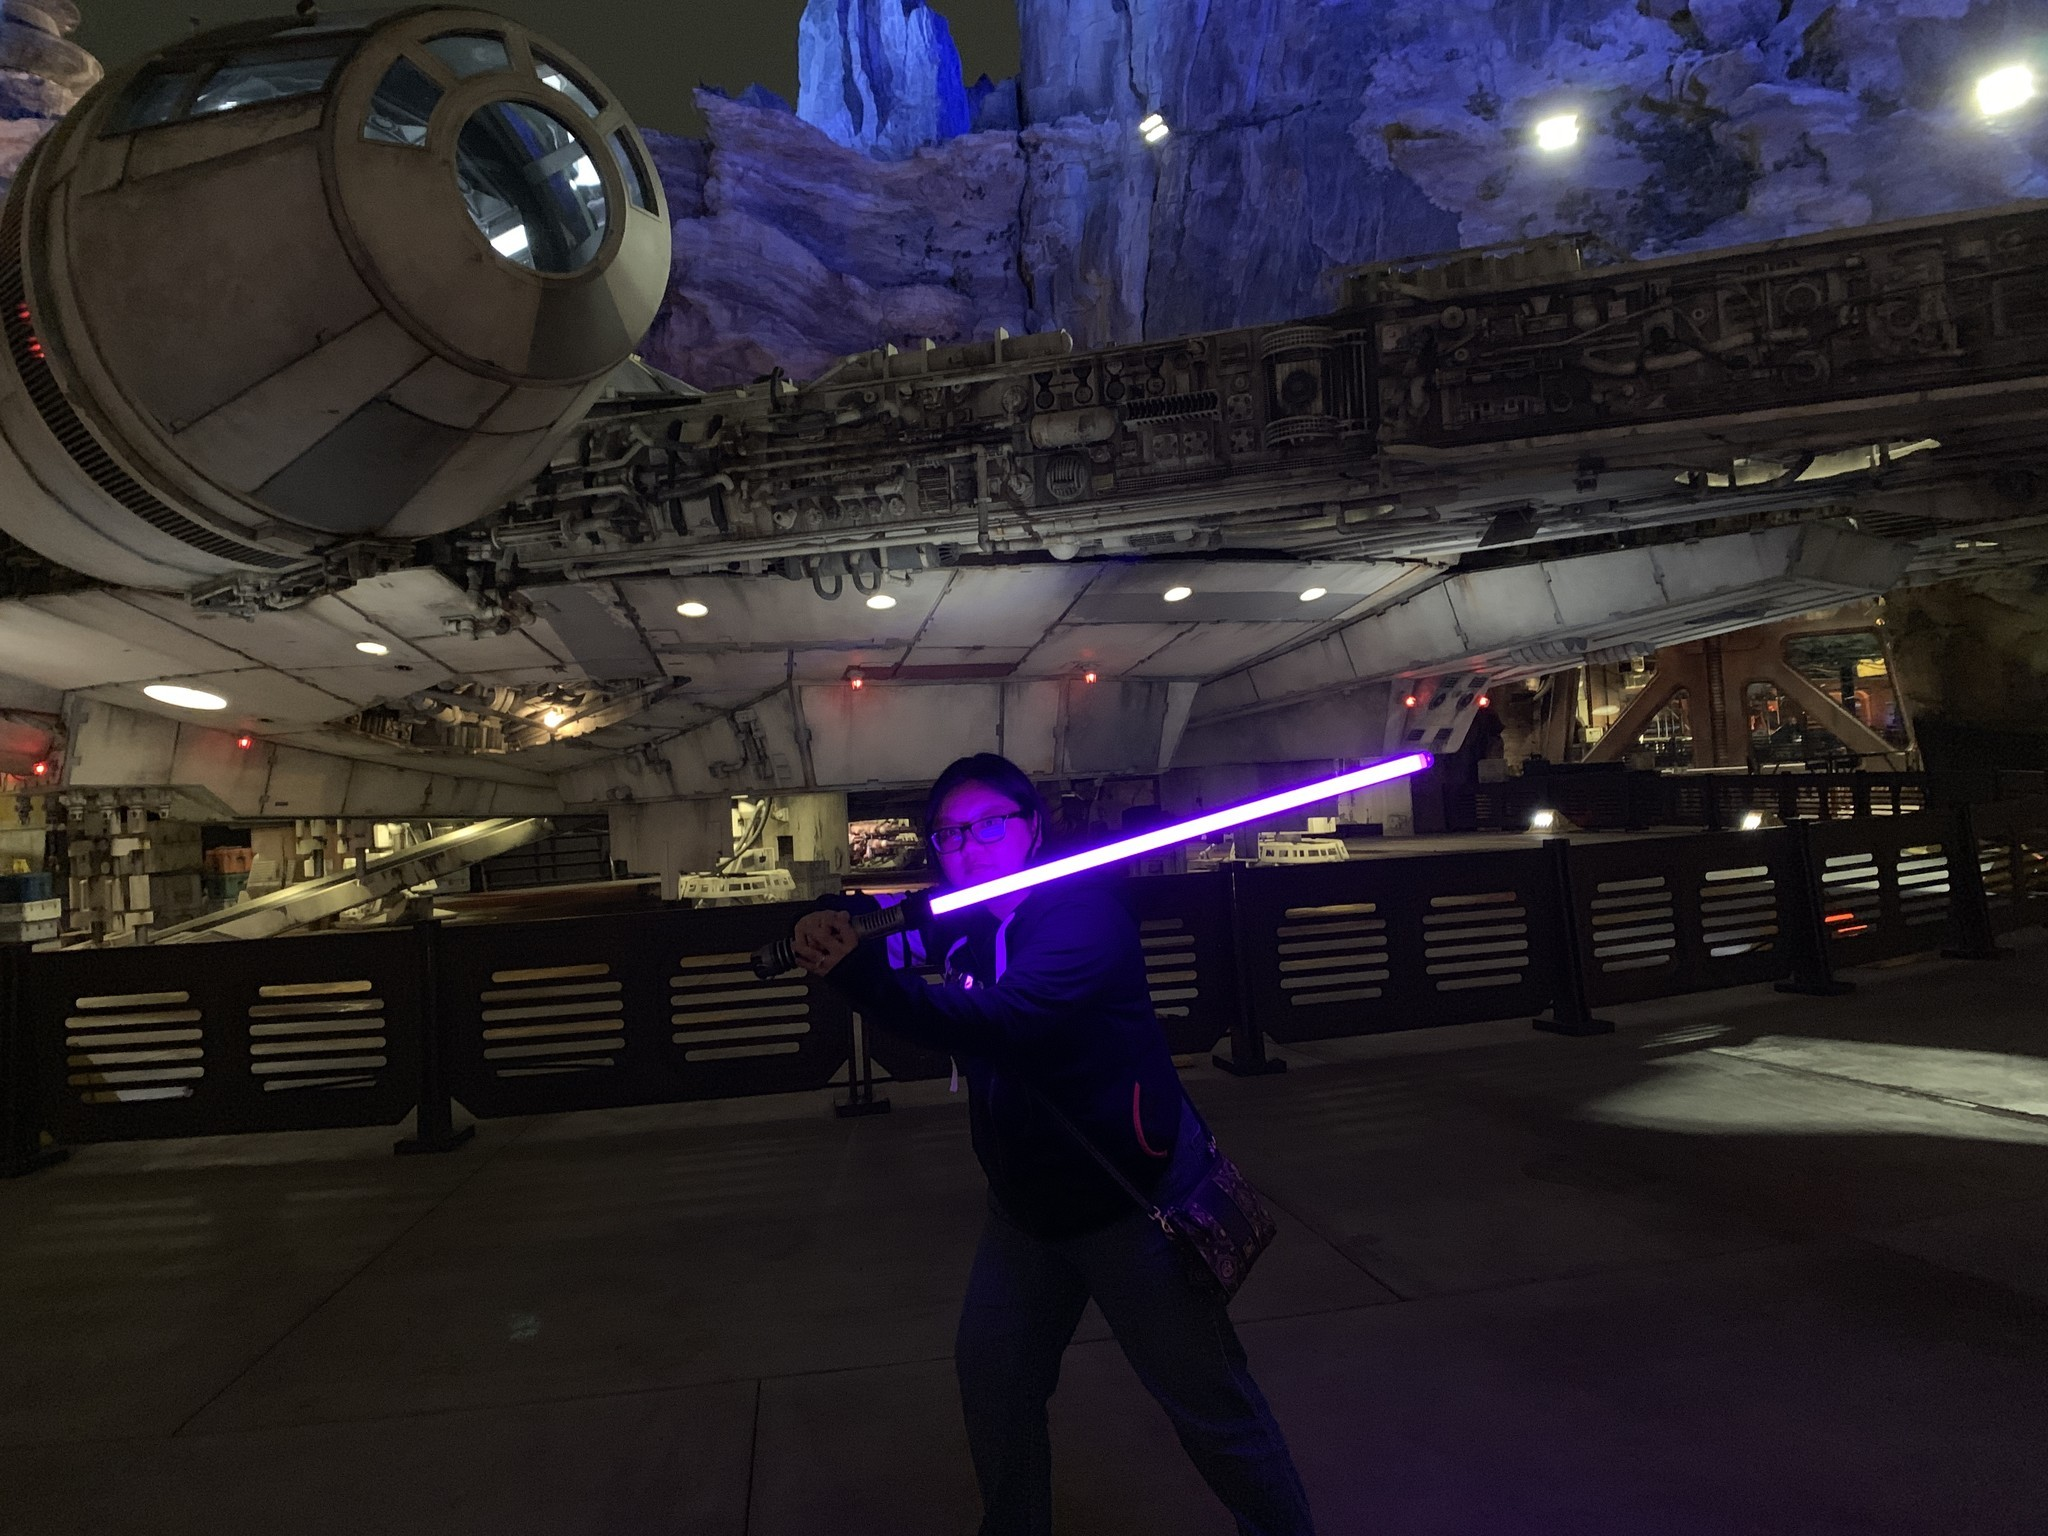 medium resolution of christine chan holds her violet lightsaber in front of the millennium falcon